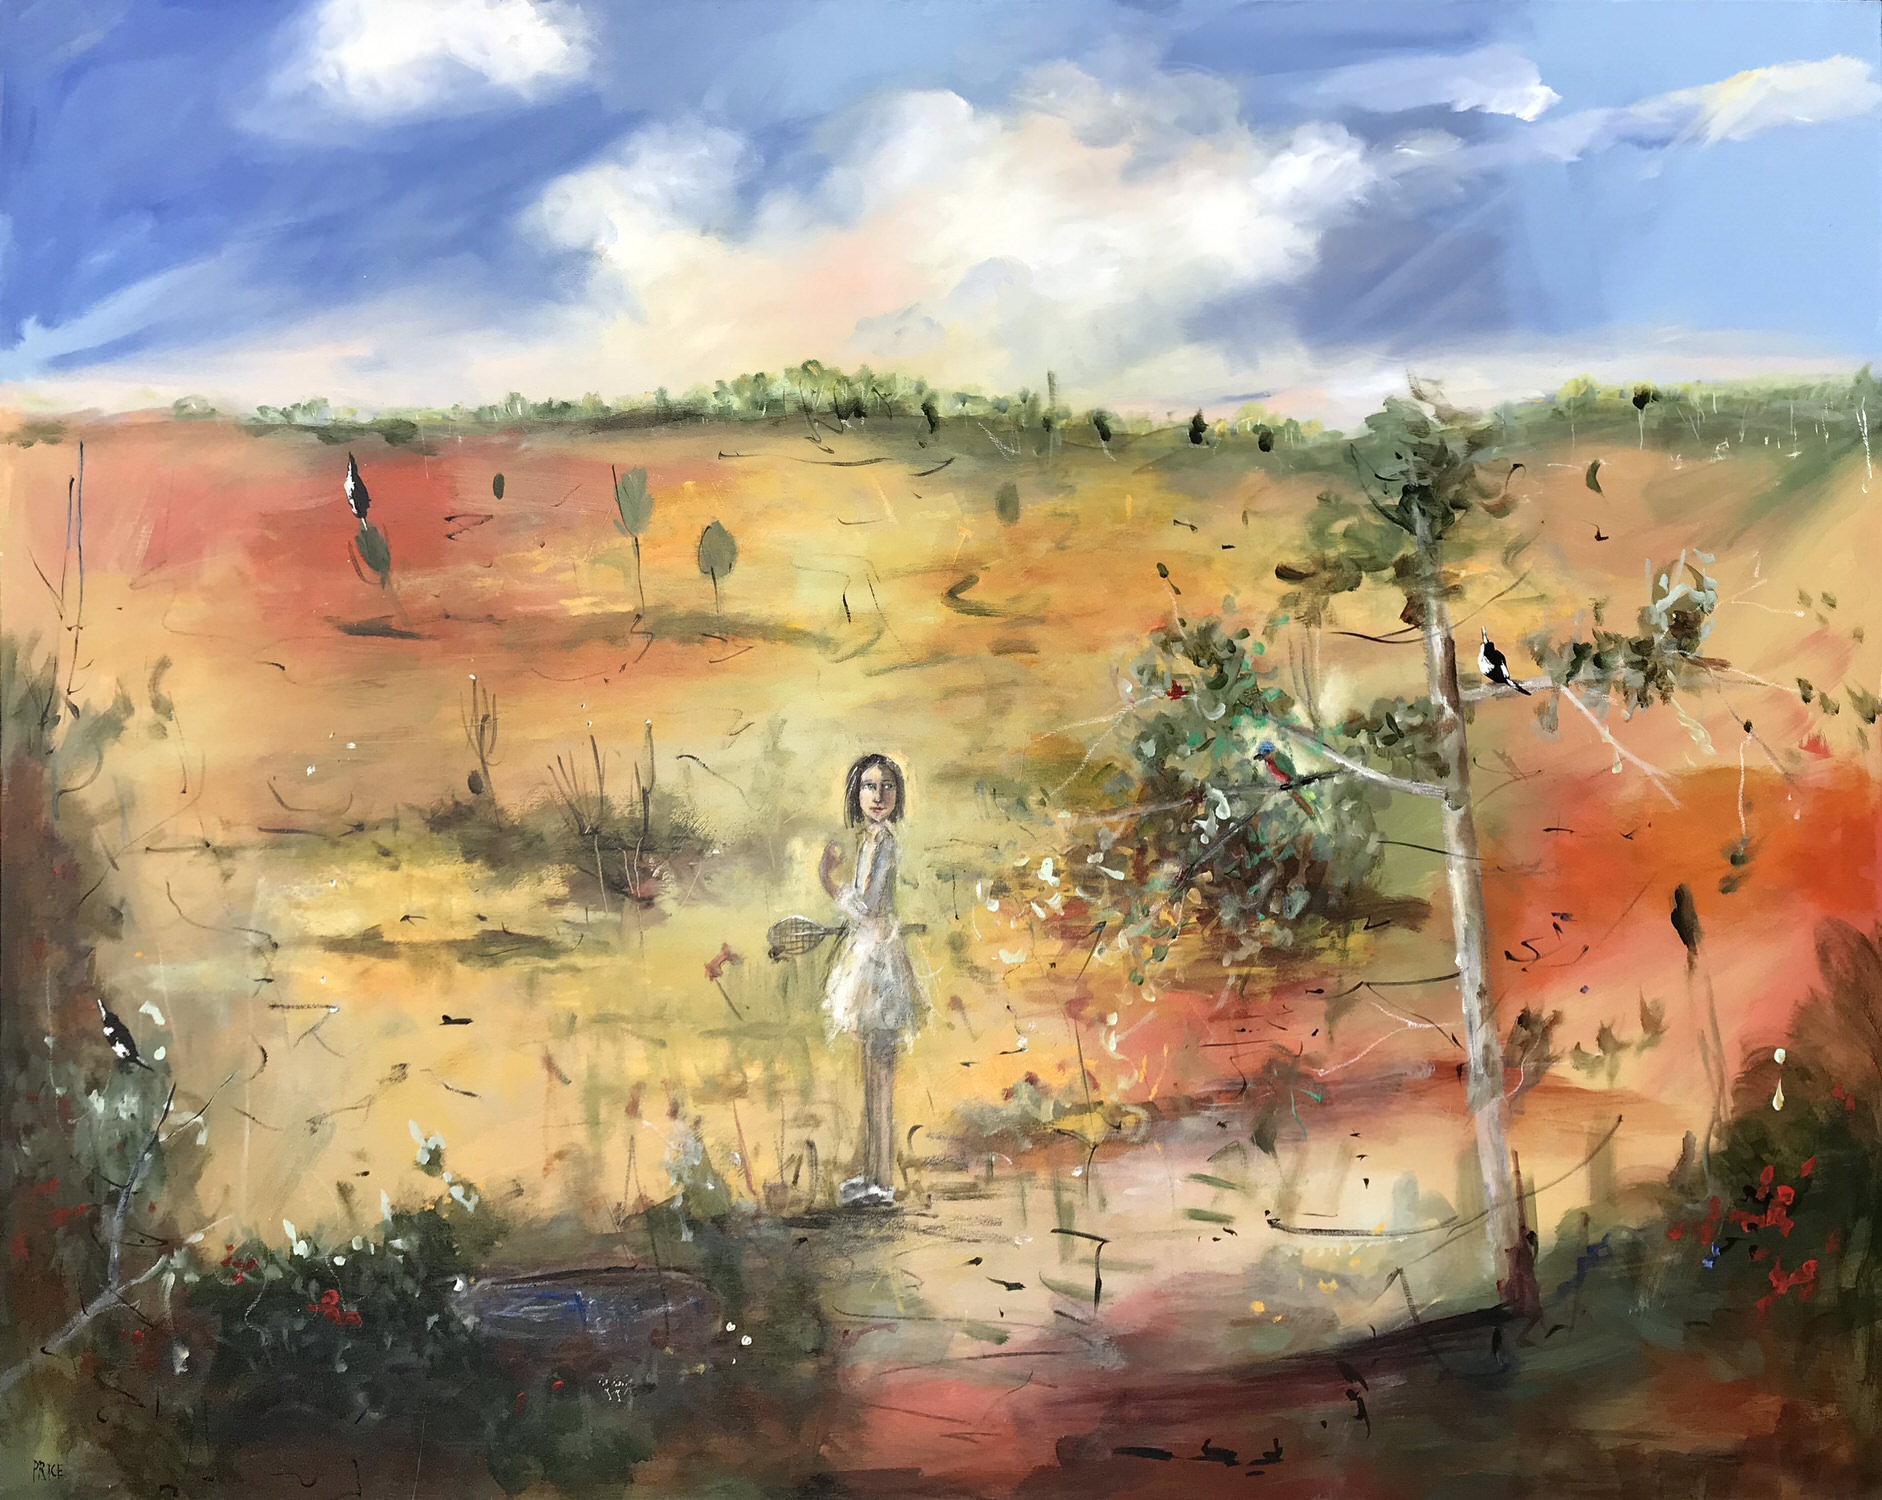 Terry Pauline PriceOn the Way to Jennis, 2019 Mixed Media on Canvas 152 x 122 cm.jpg